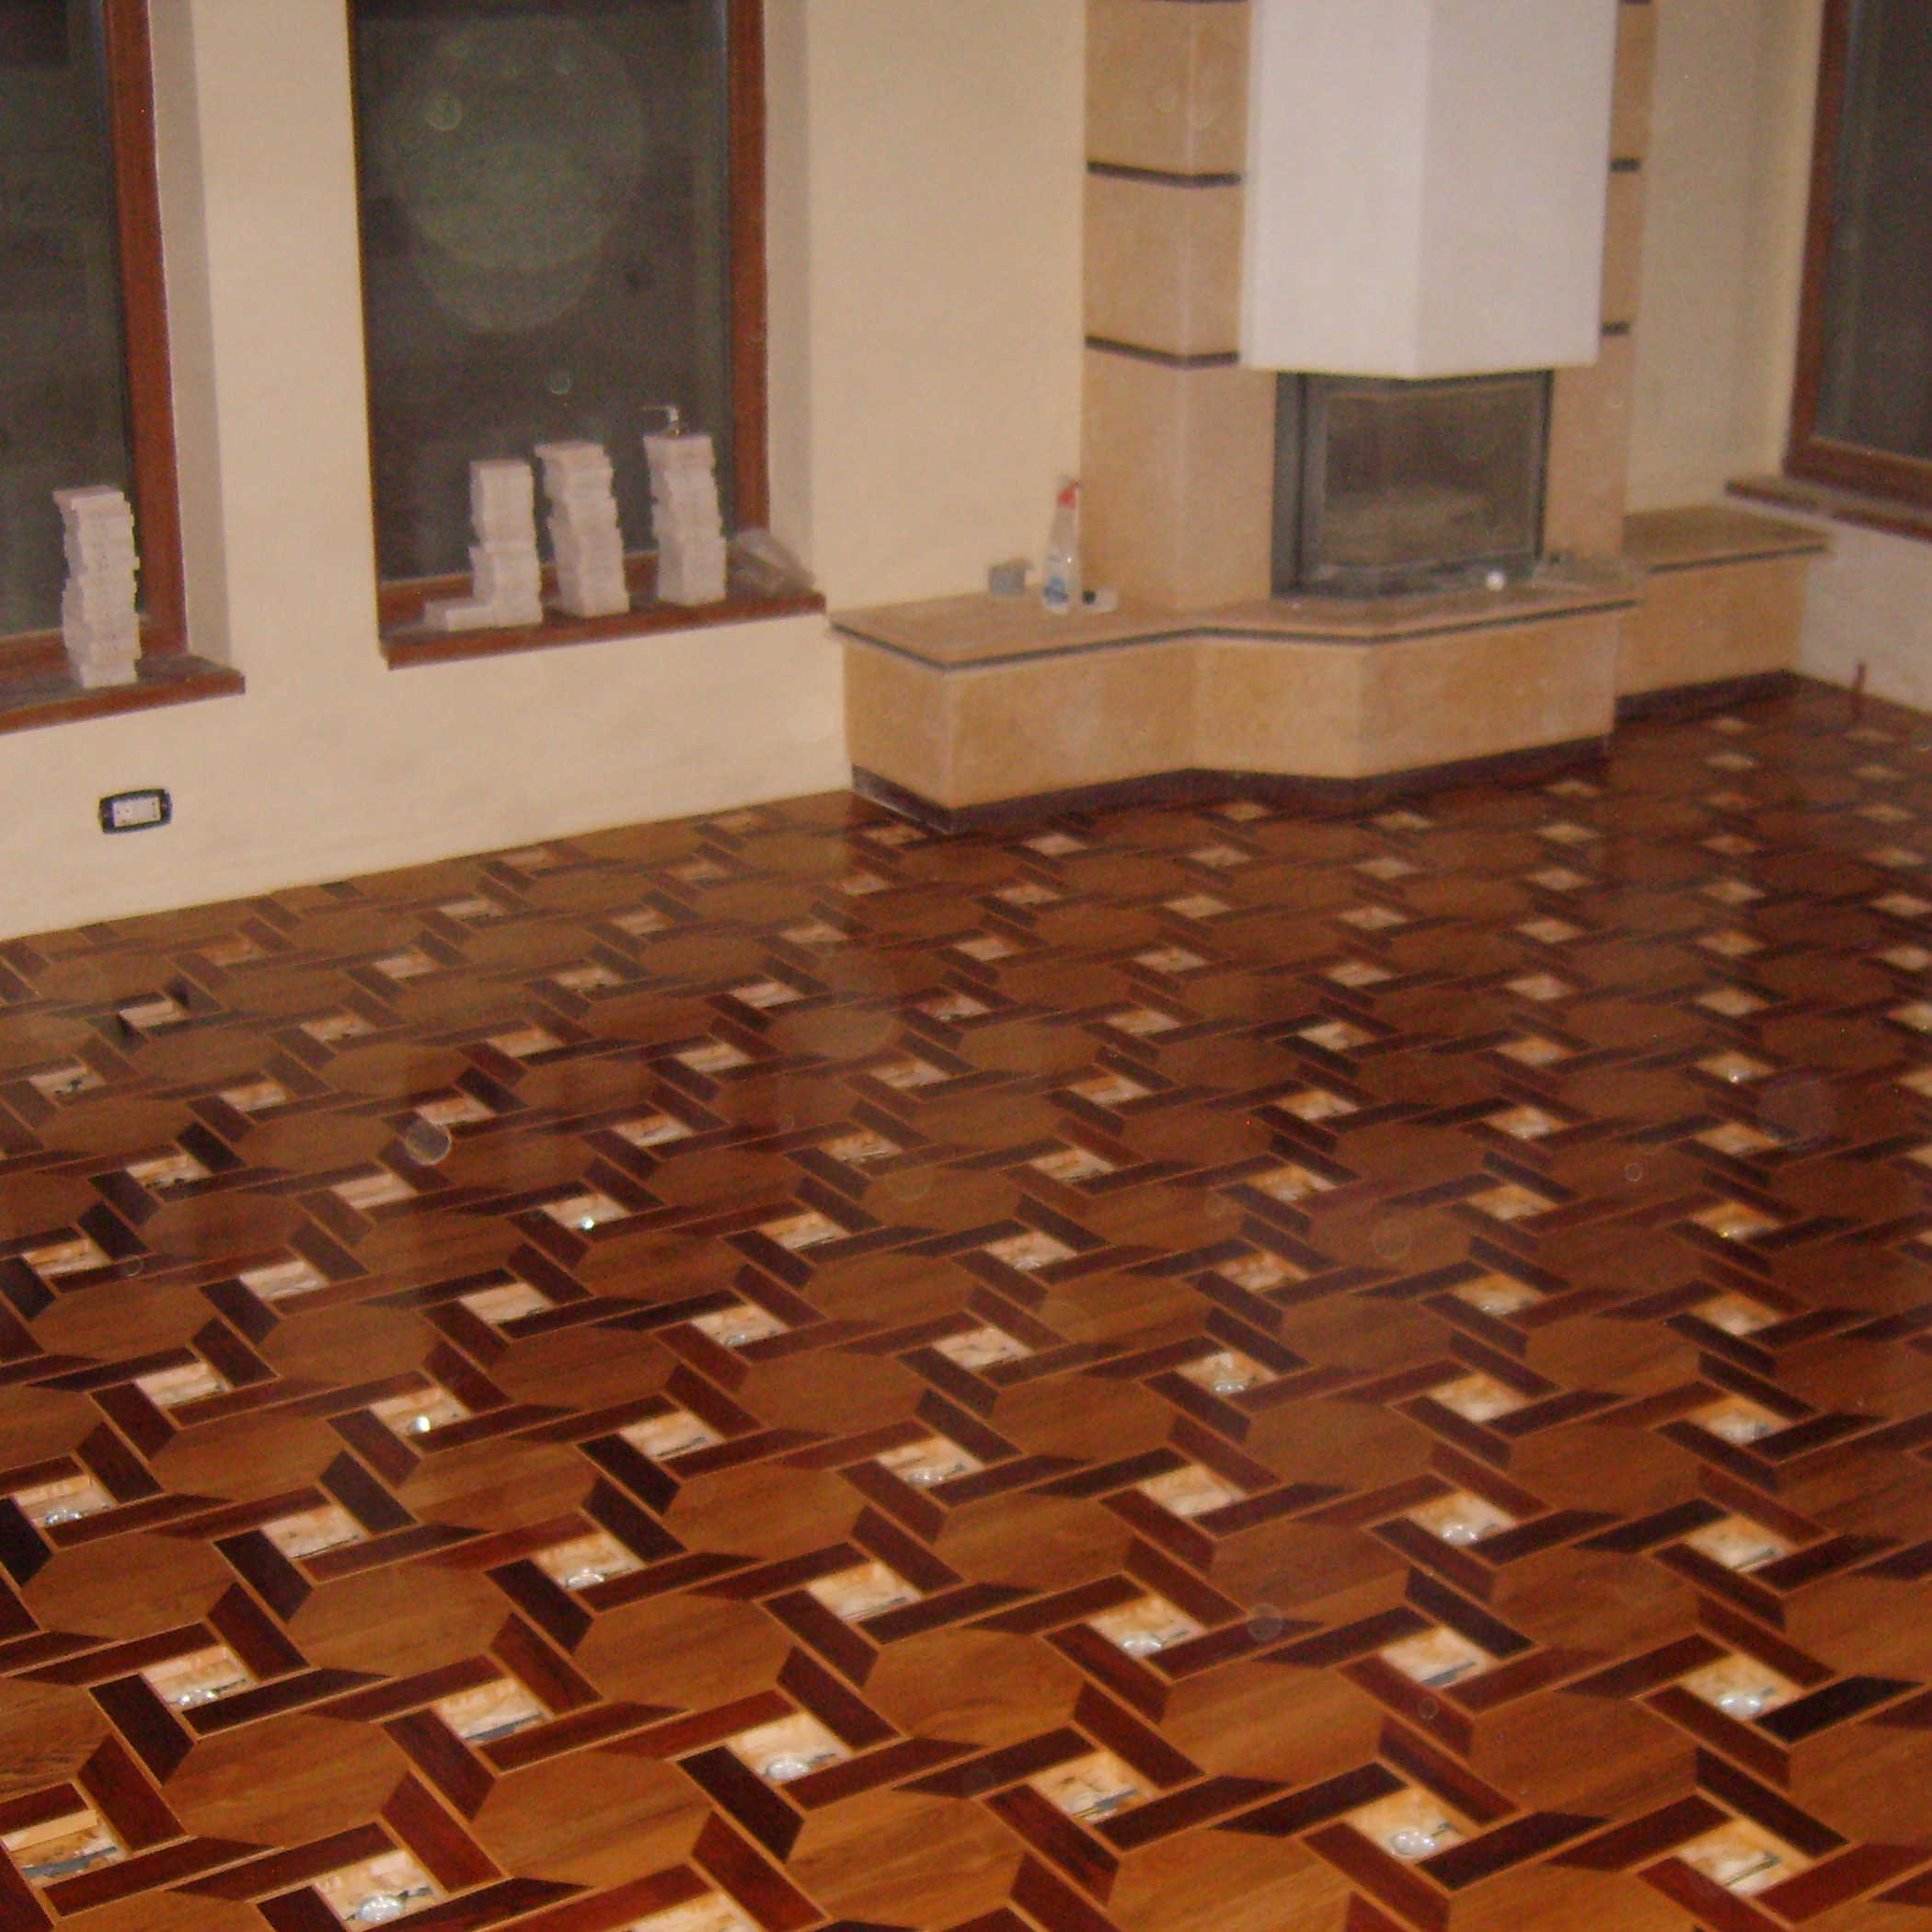 1.Hexagonal parquet floor